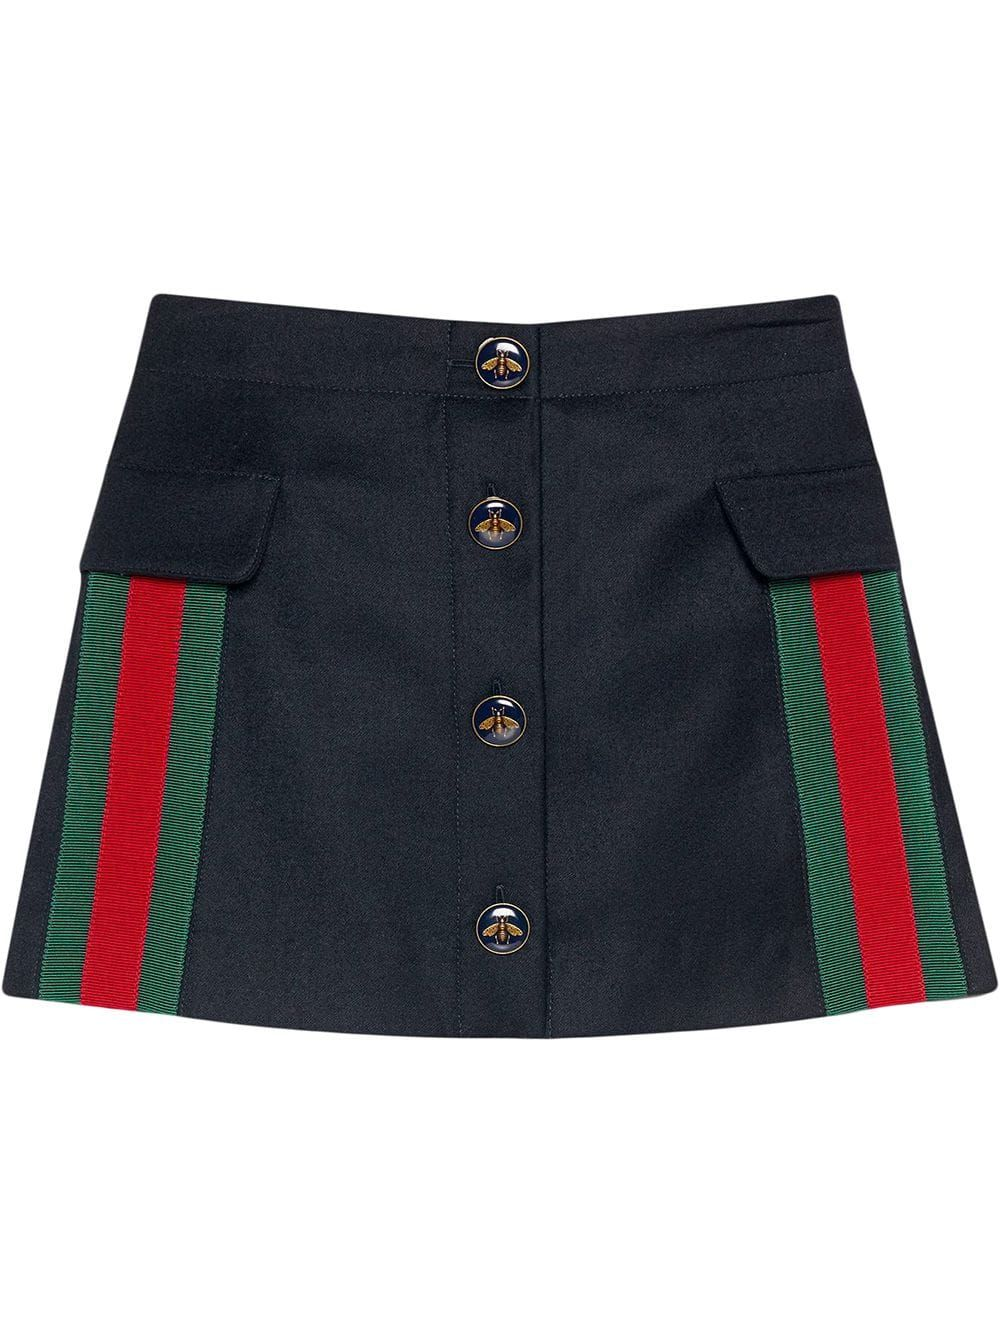 GUCCI KIDS SKIRT IN WOOL AND CASHMERE WITH WEB